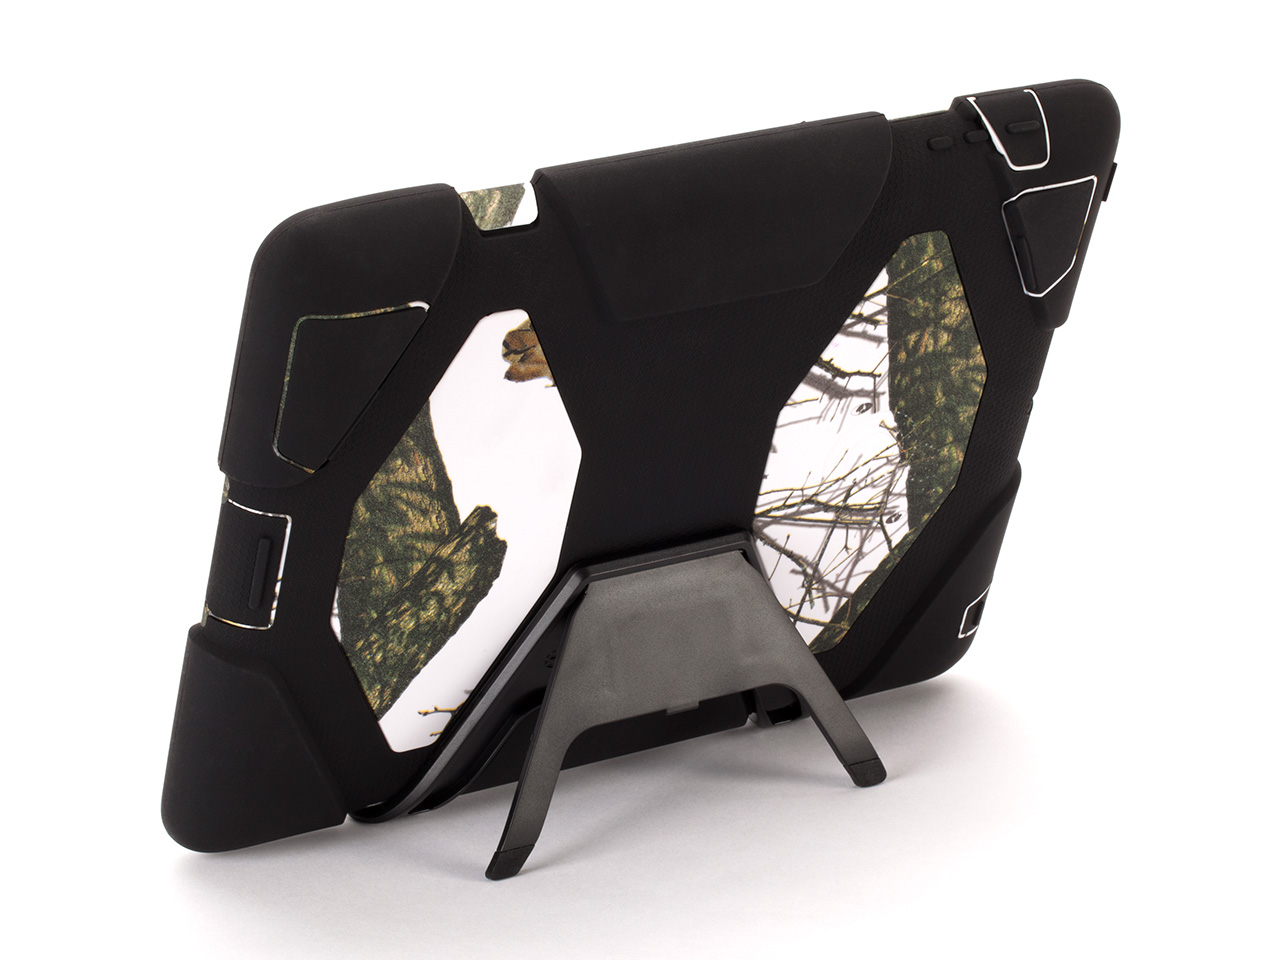 Winter/Black Survivor All-Terrain in Mossy Oak Camo + Stand for iPad 2